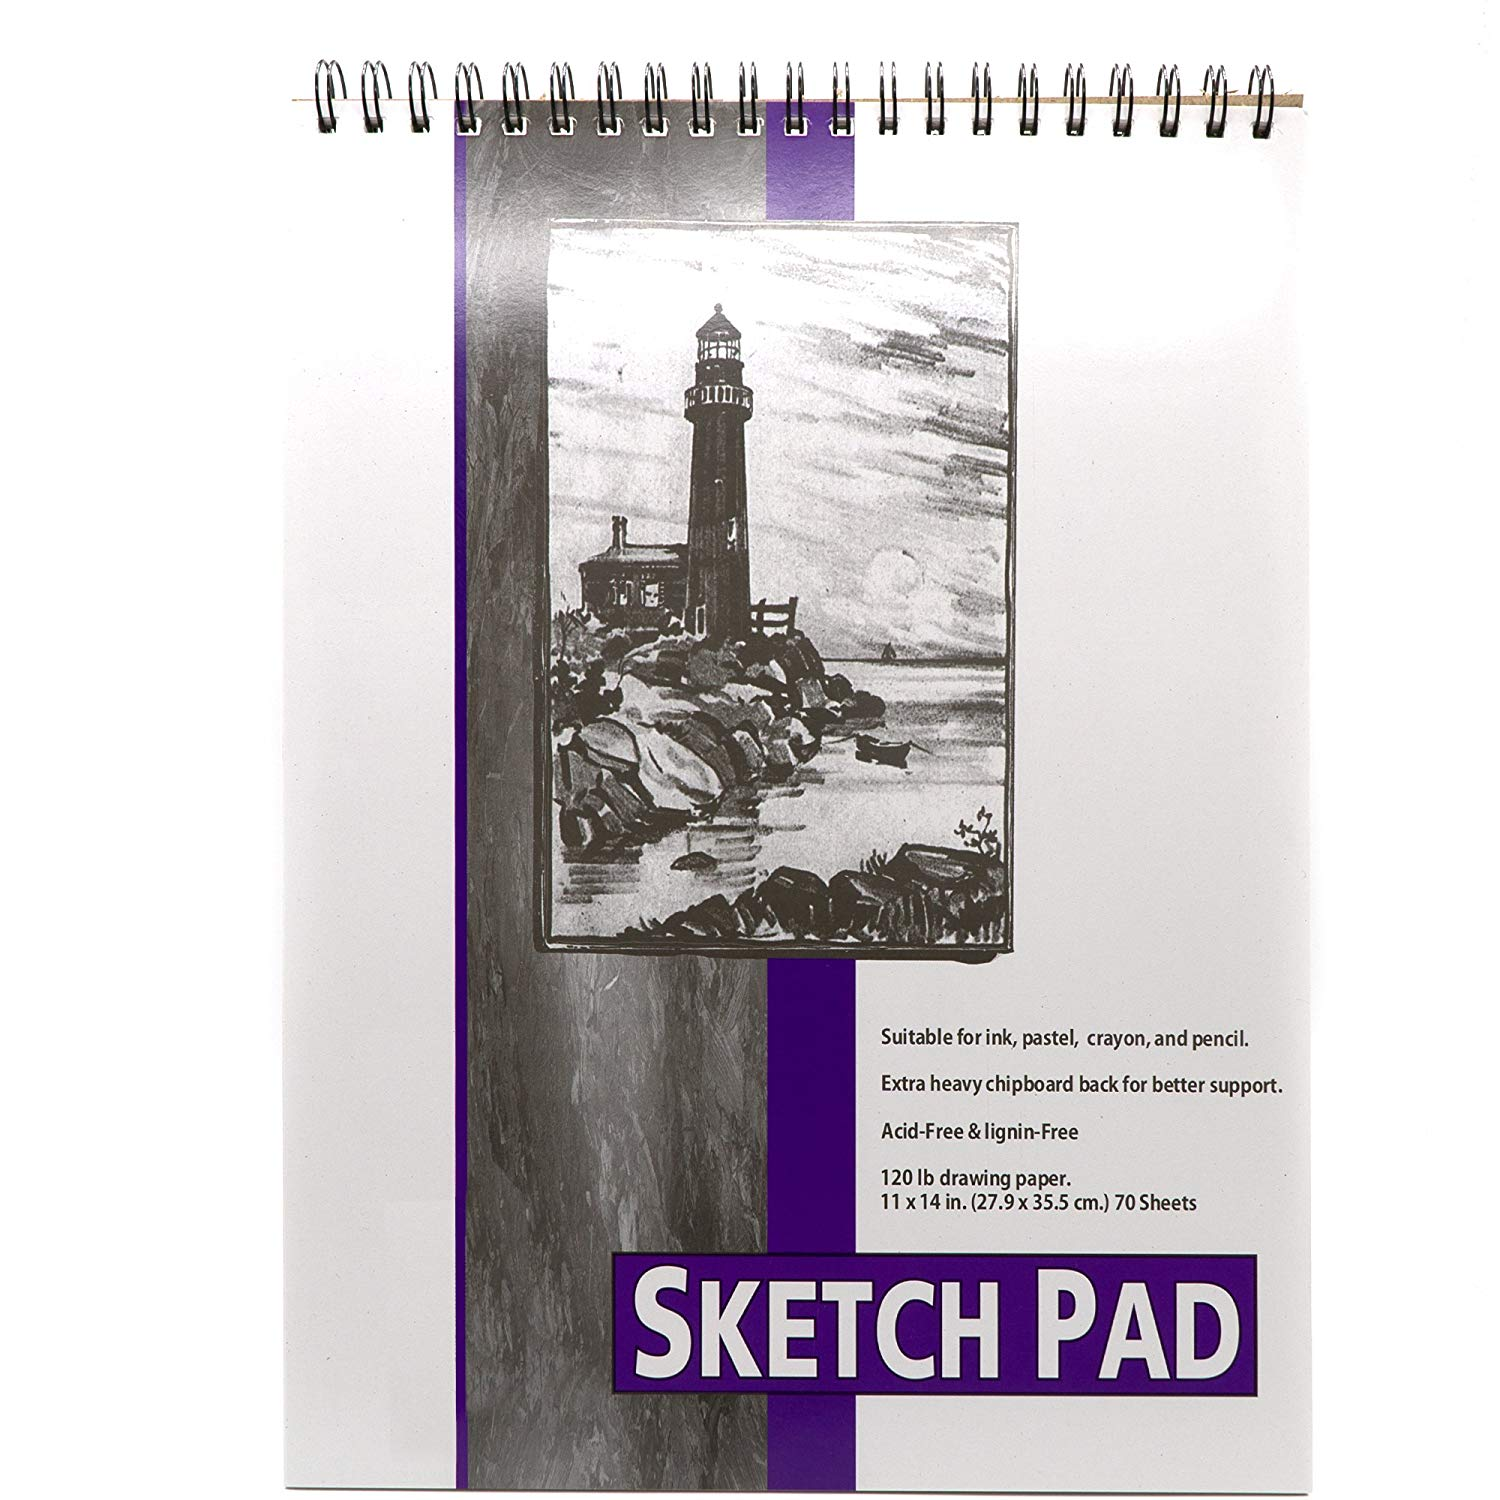 Emraw 70 Sheets Sketch Book - Artist Sketch Pads, Art Book Acid Free Drawing Paper for Kids, sketch pad book Drawing and School Supplies Spiral Sketch Pad & spiral bound drawing book